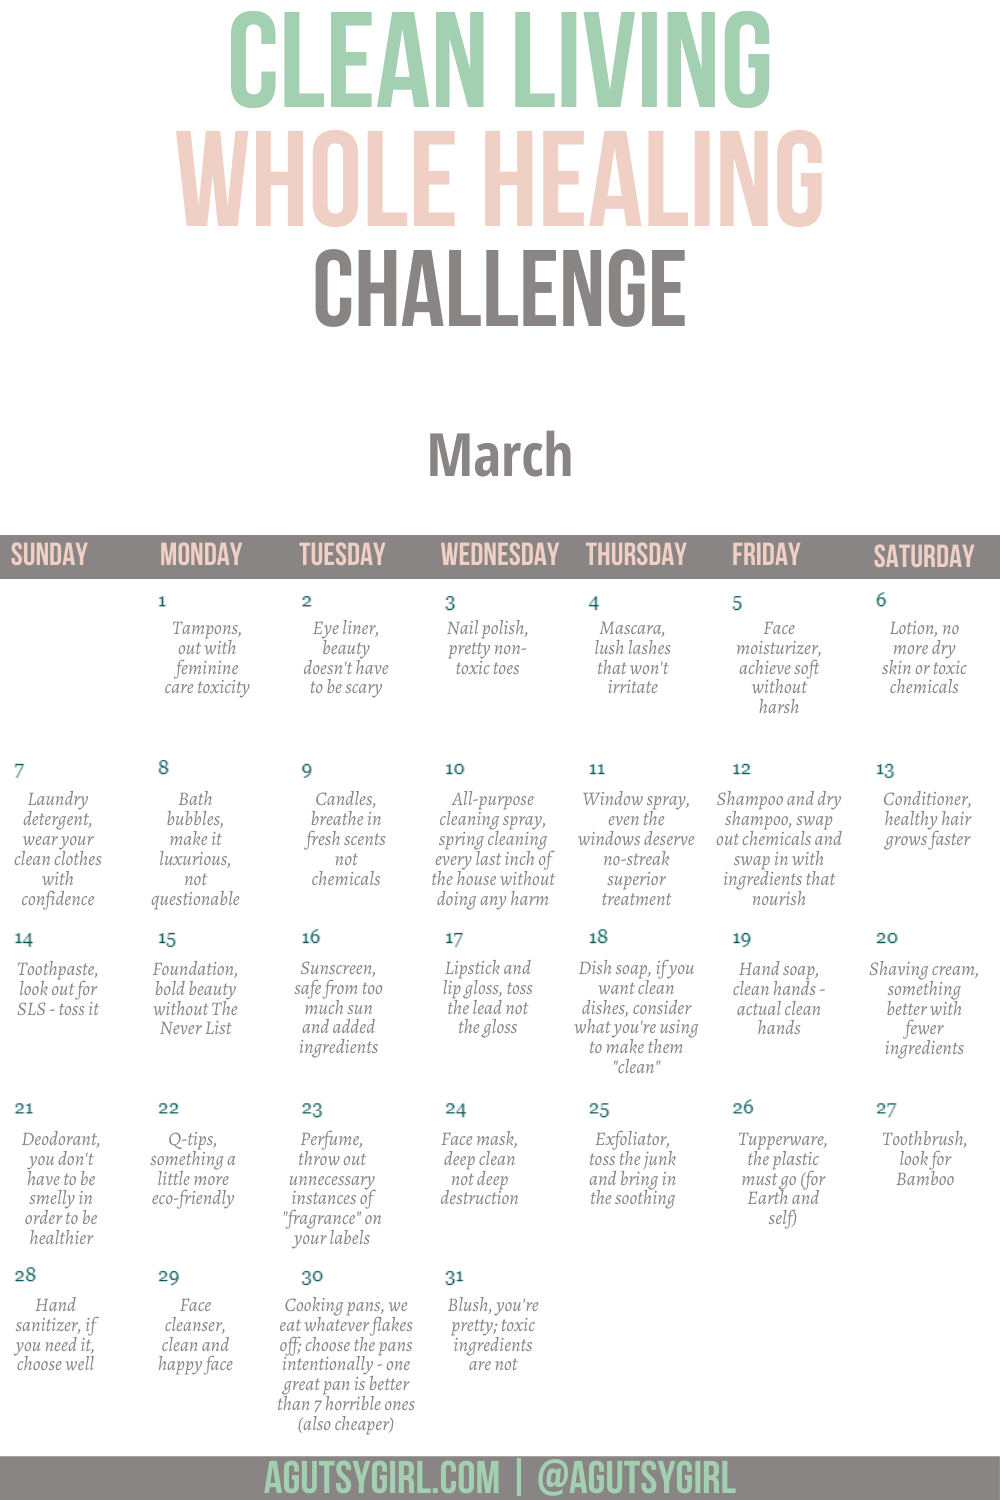 Clean Living challenge agutsygirl.com #cleanliving #naturalbeauty #healthchallenge